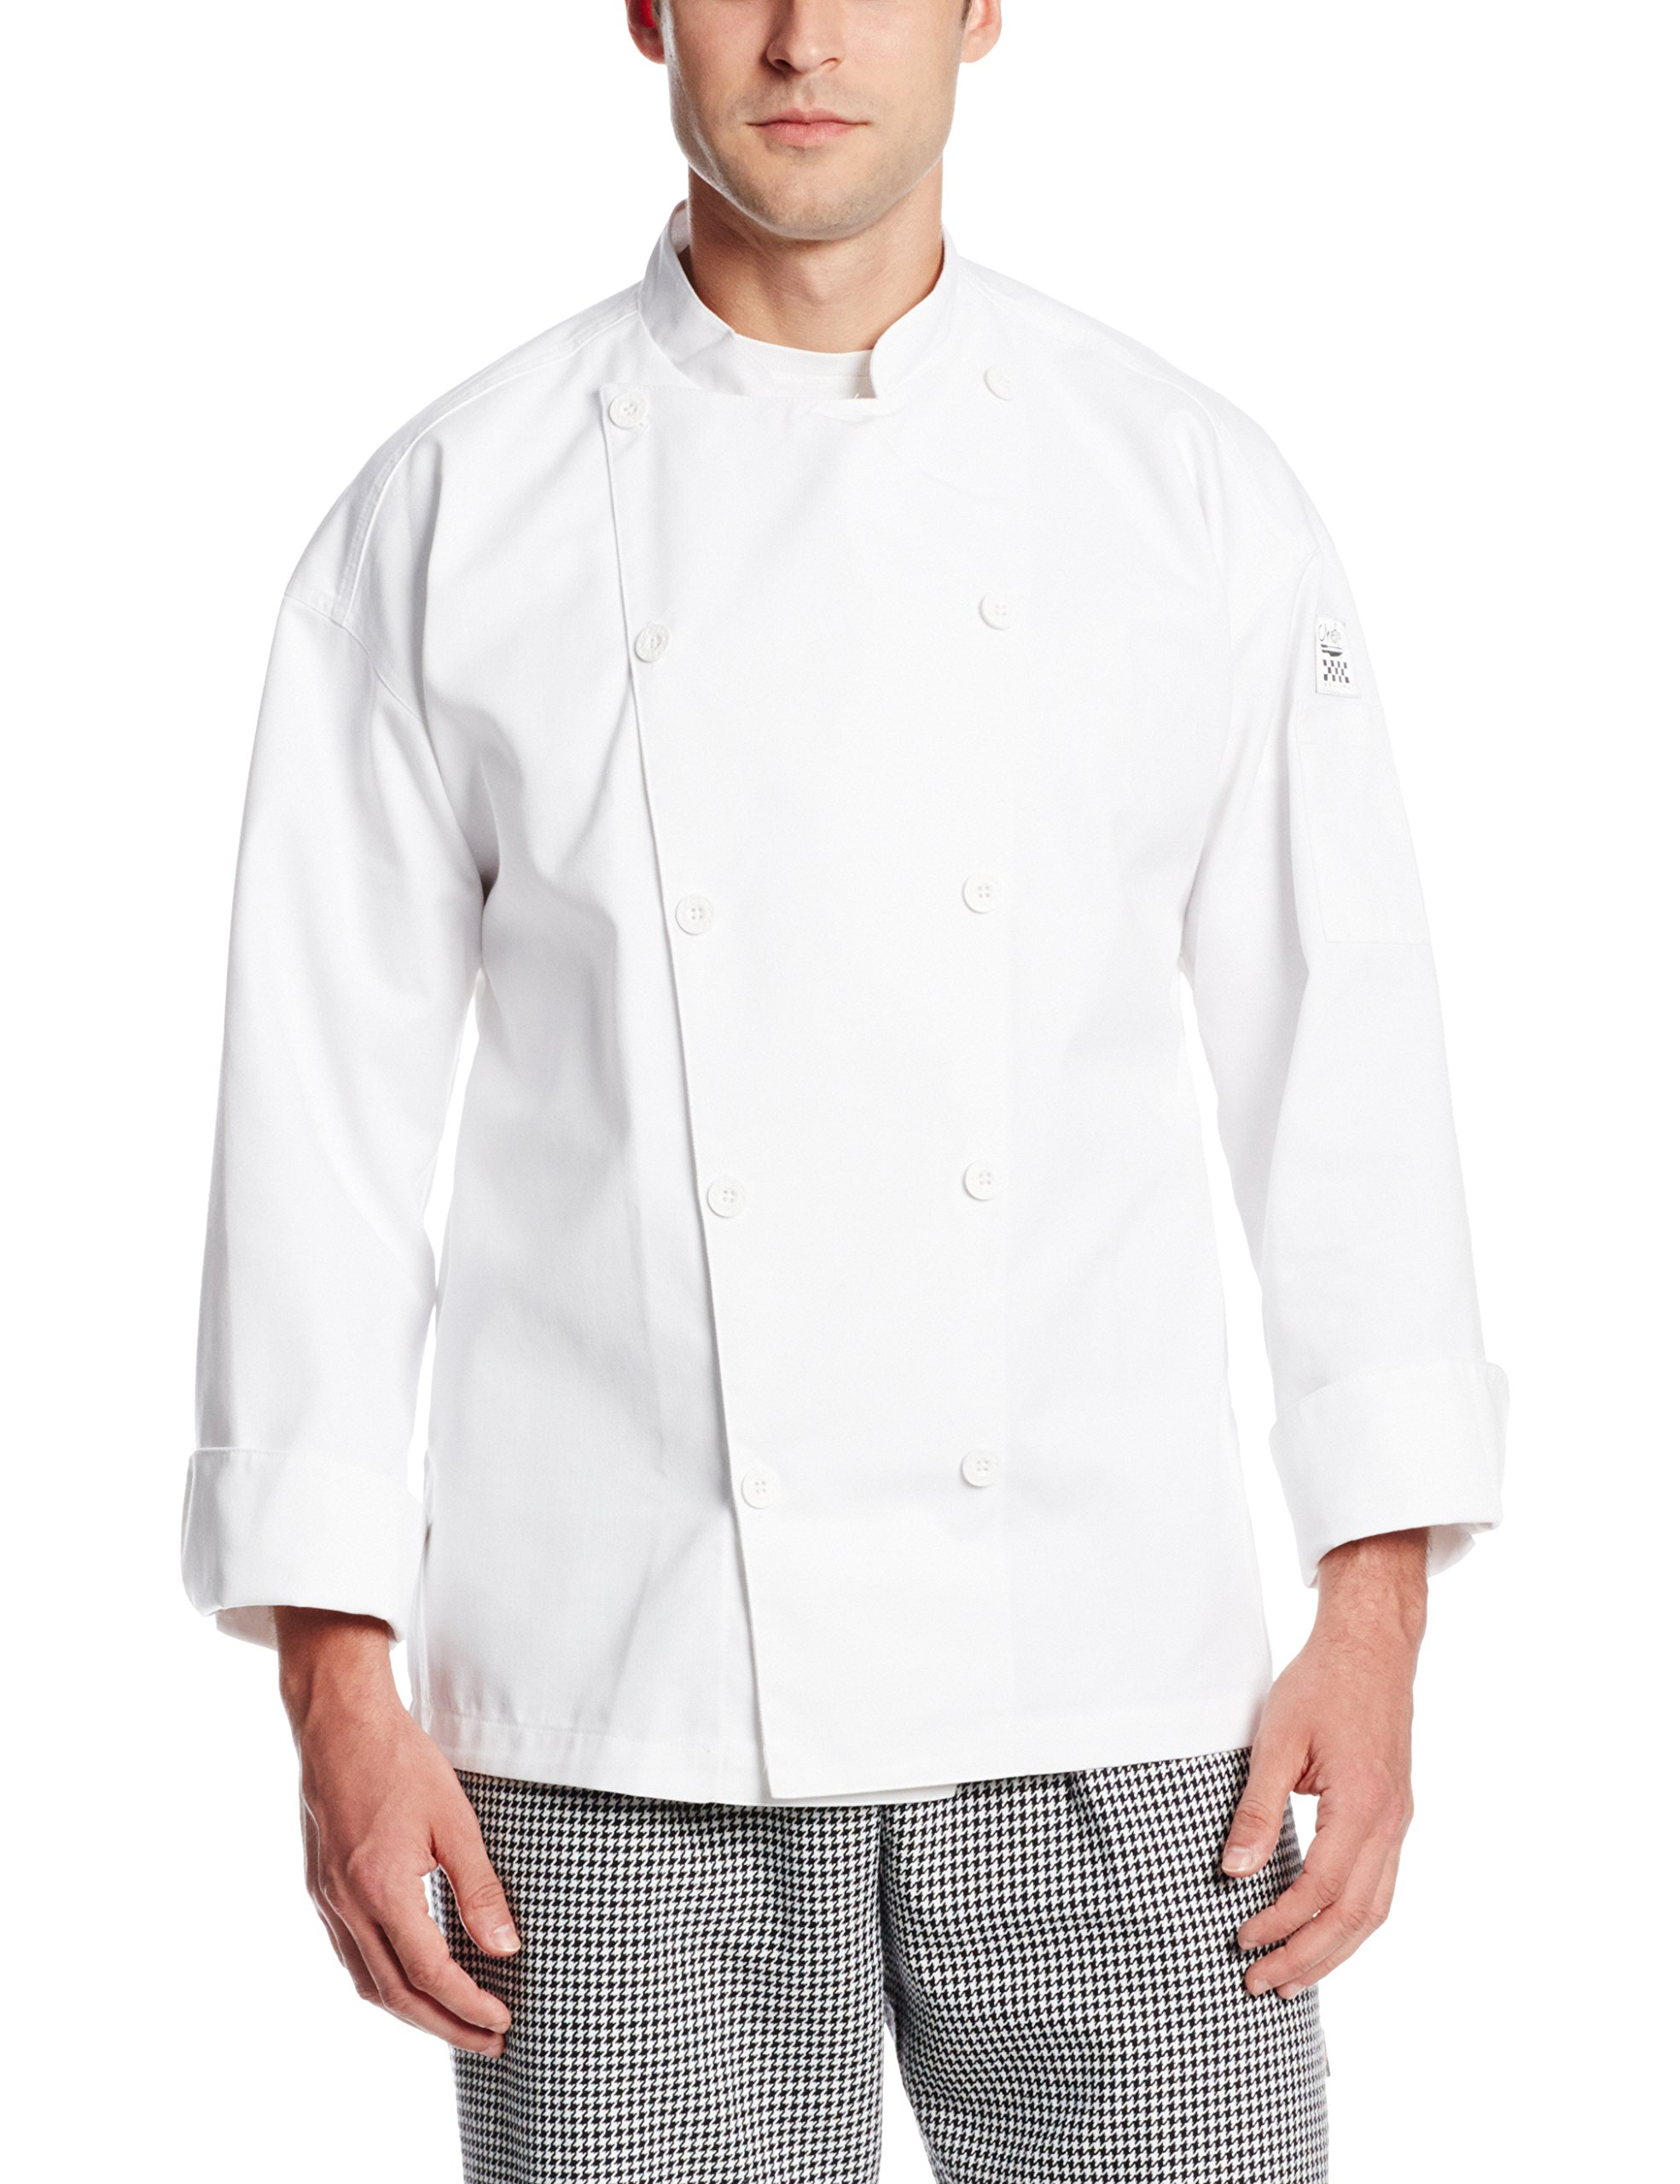 San Jamar J028 Chef-Tex Poly Cotton Traditional Long Sleeve Chef Jacket with Chef Logo Button, Small, White by San Jamar